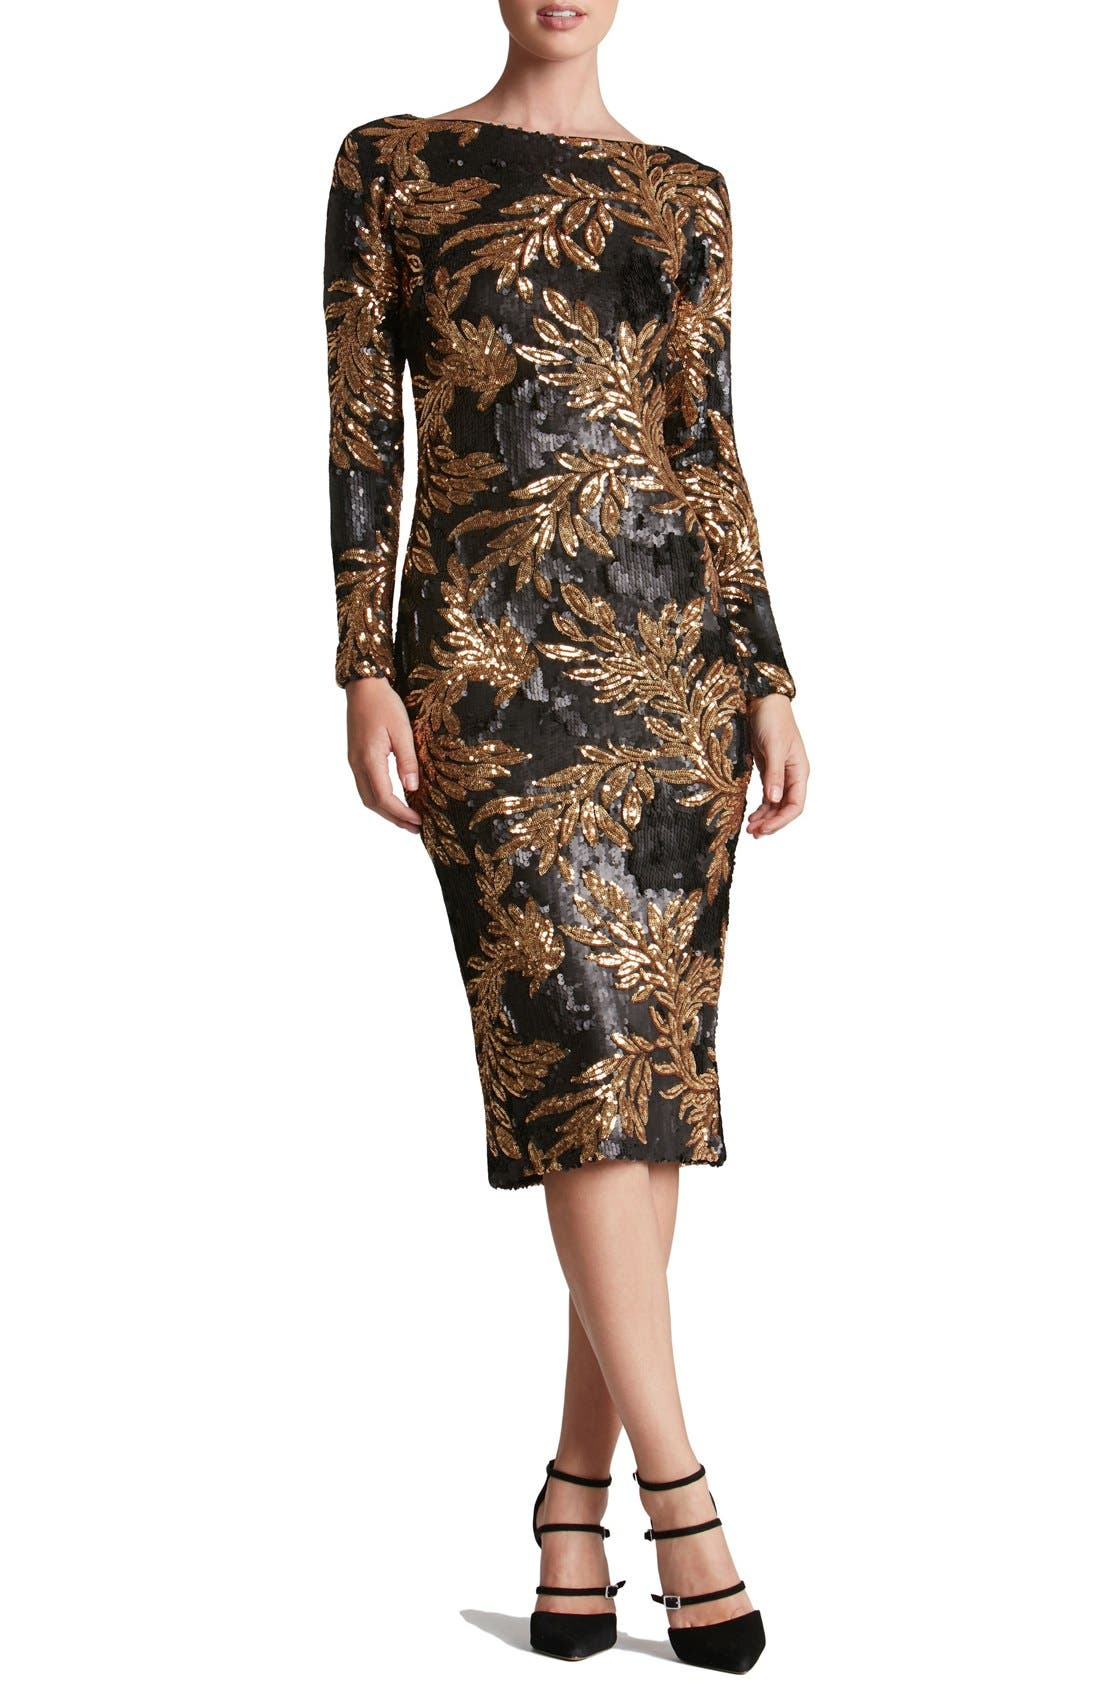 Alternate Image 1 Selected - Dress the Population 'Emery' Scoop Back Two-Tone Sequin Sheath Dress